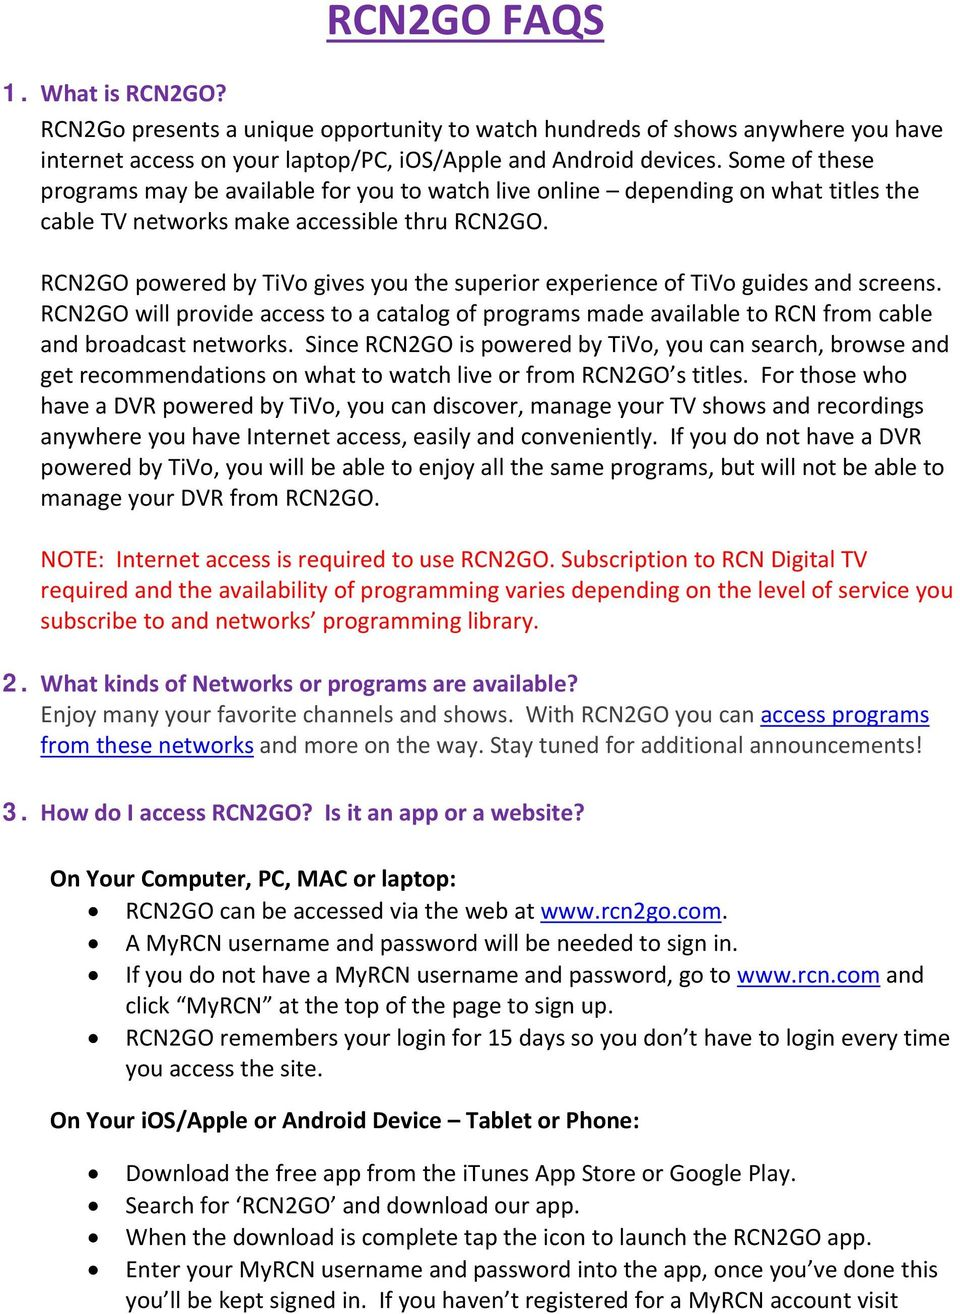 RCN2GO FAQS  On Your ios/apple or Android Device Tablet or